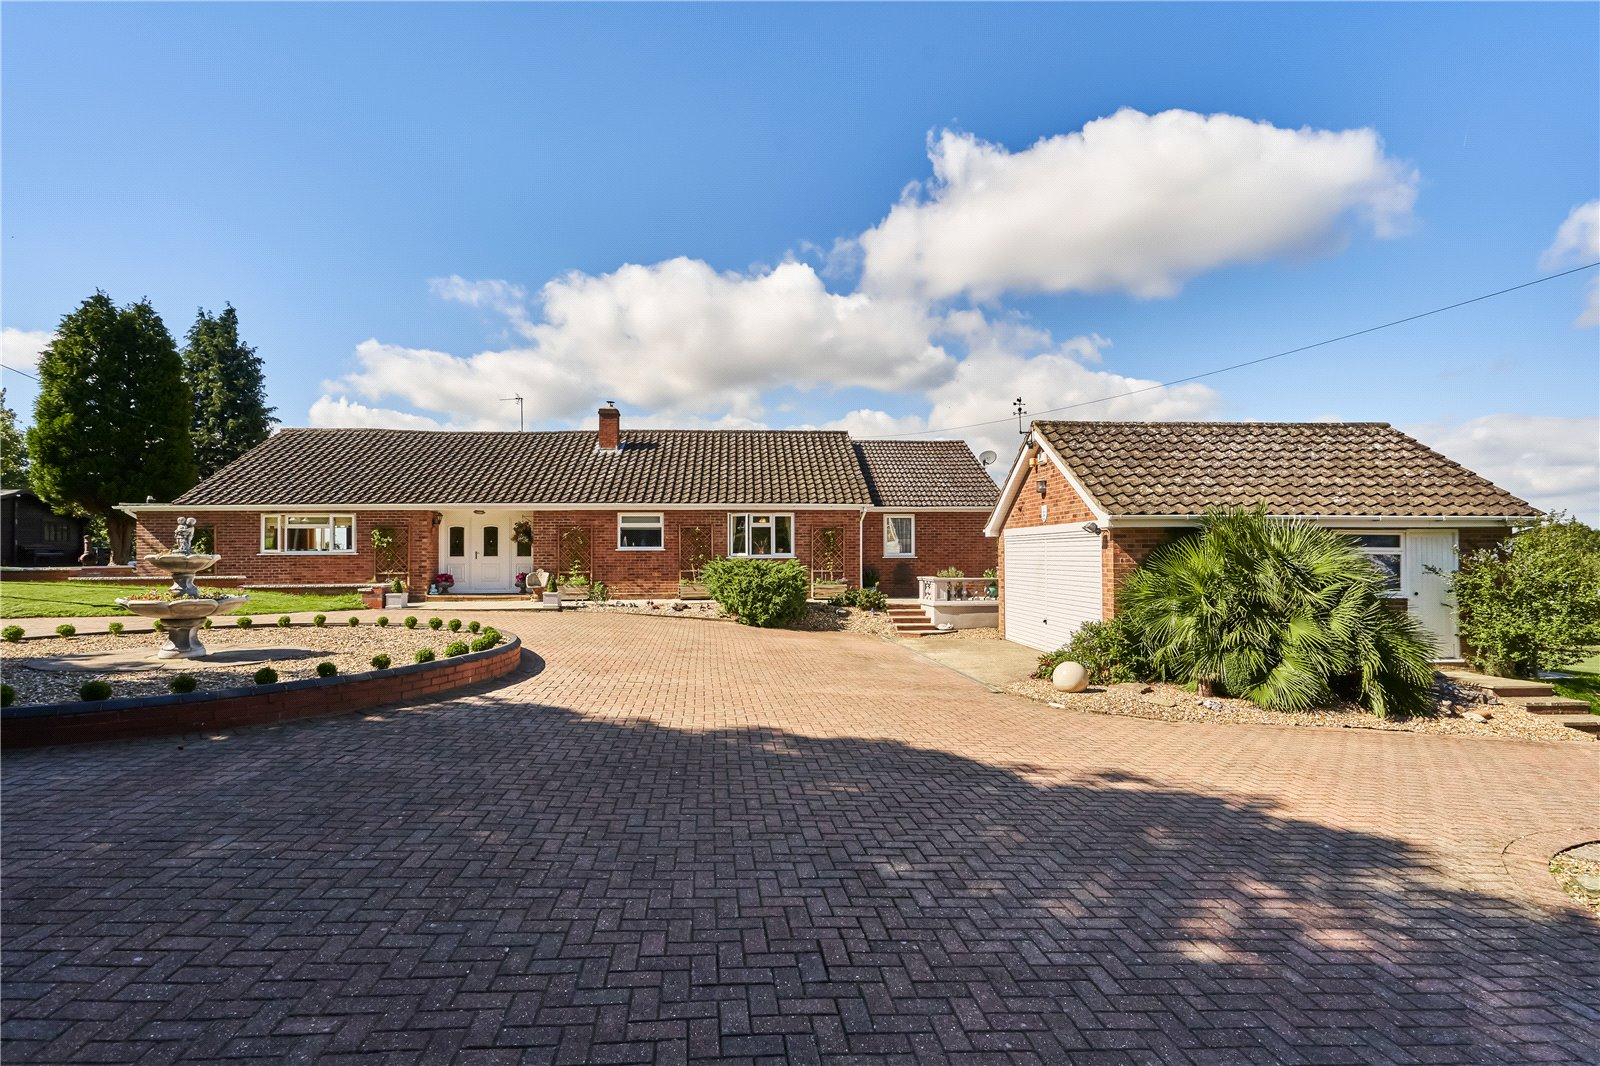 4 bed bungalow for sale in Great Paxton, PE19 6RB, PE19